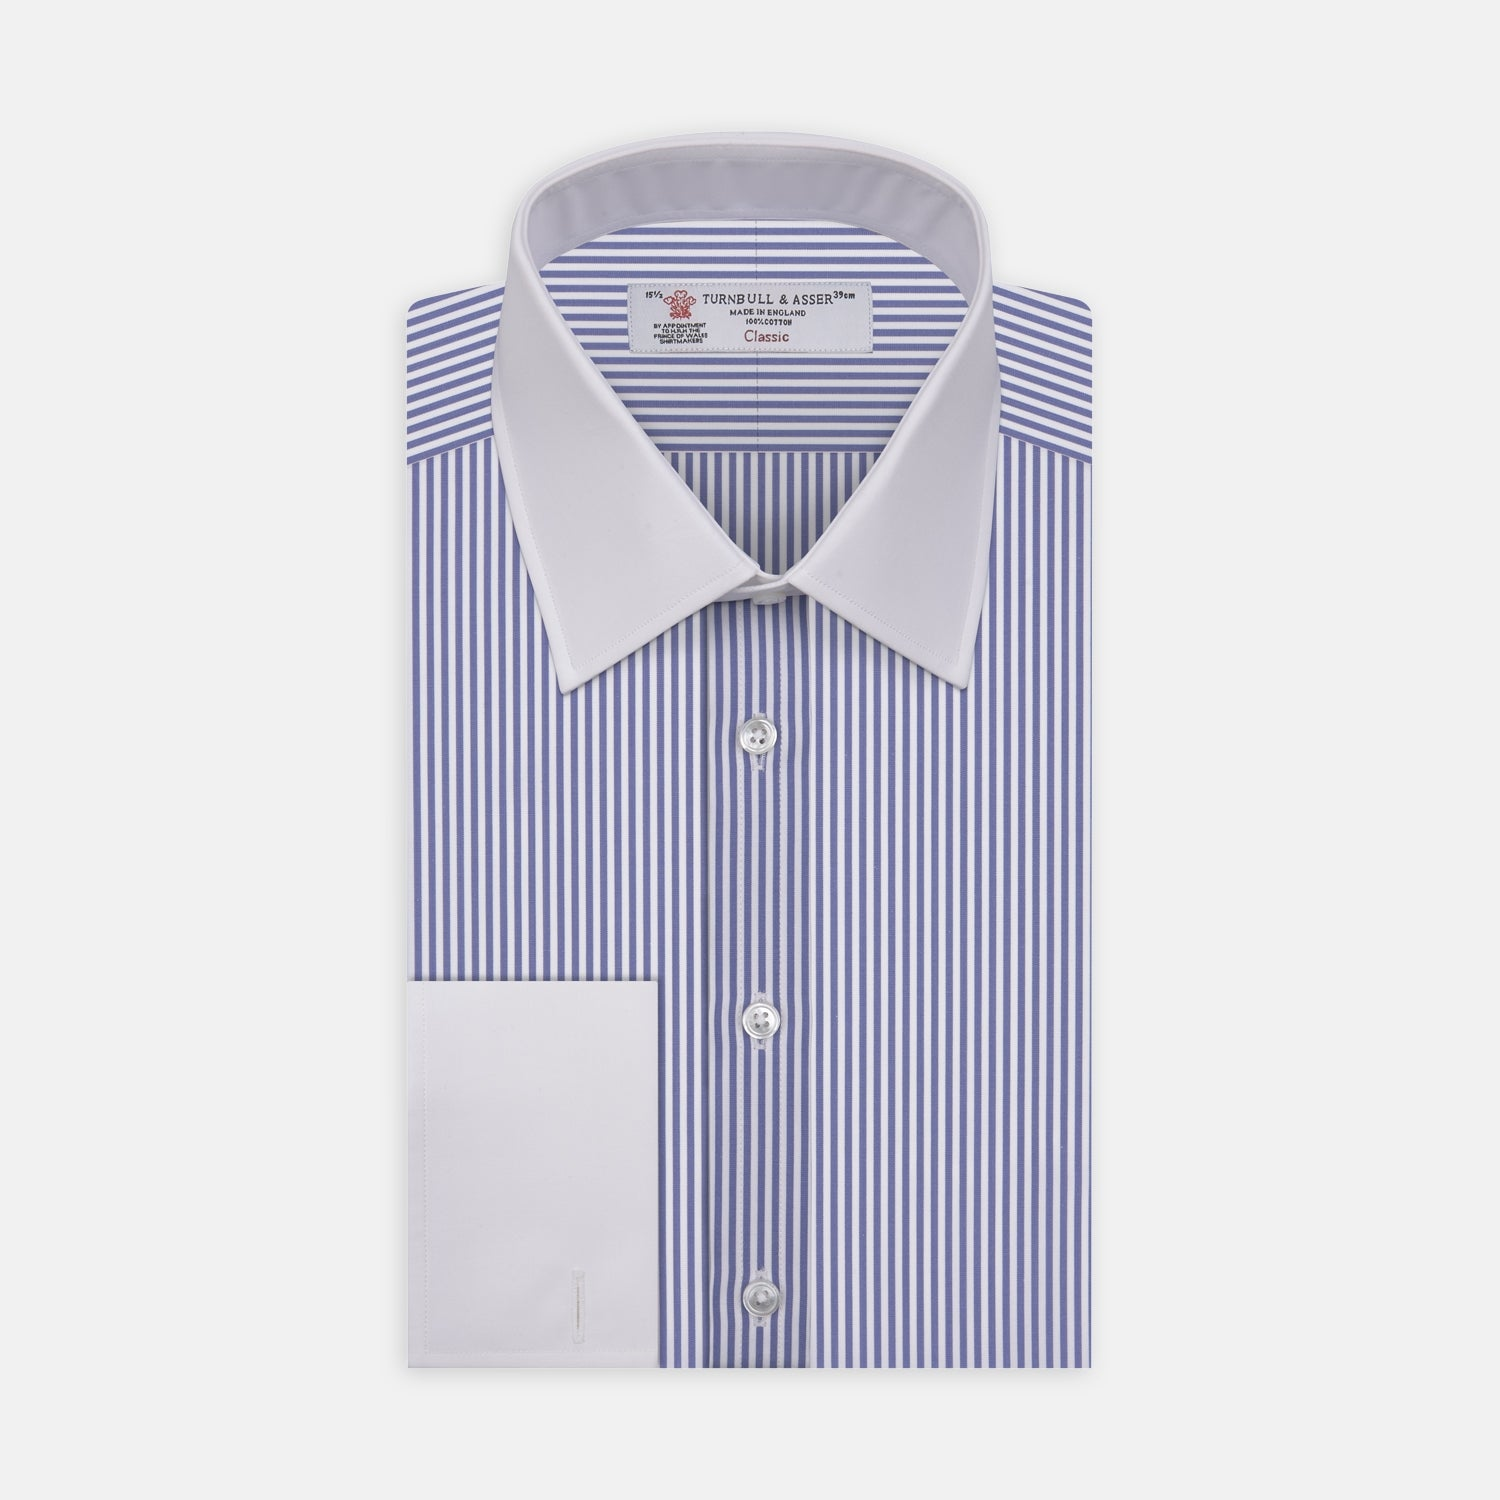 The Gekko Shirt with White Classic T&A Collar and Cuffs